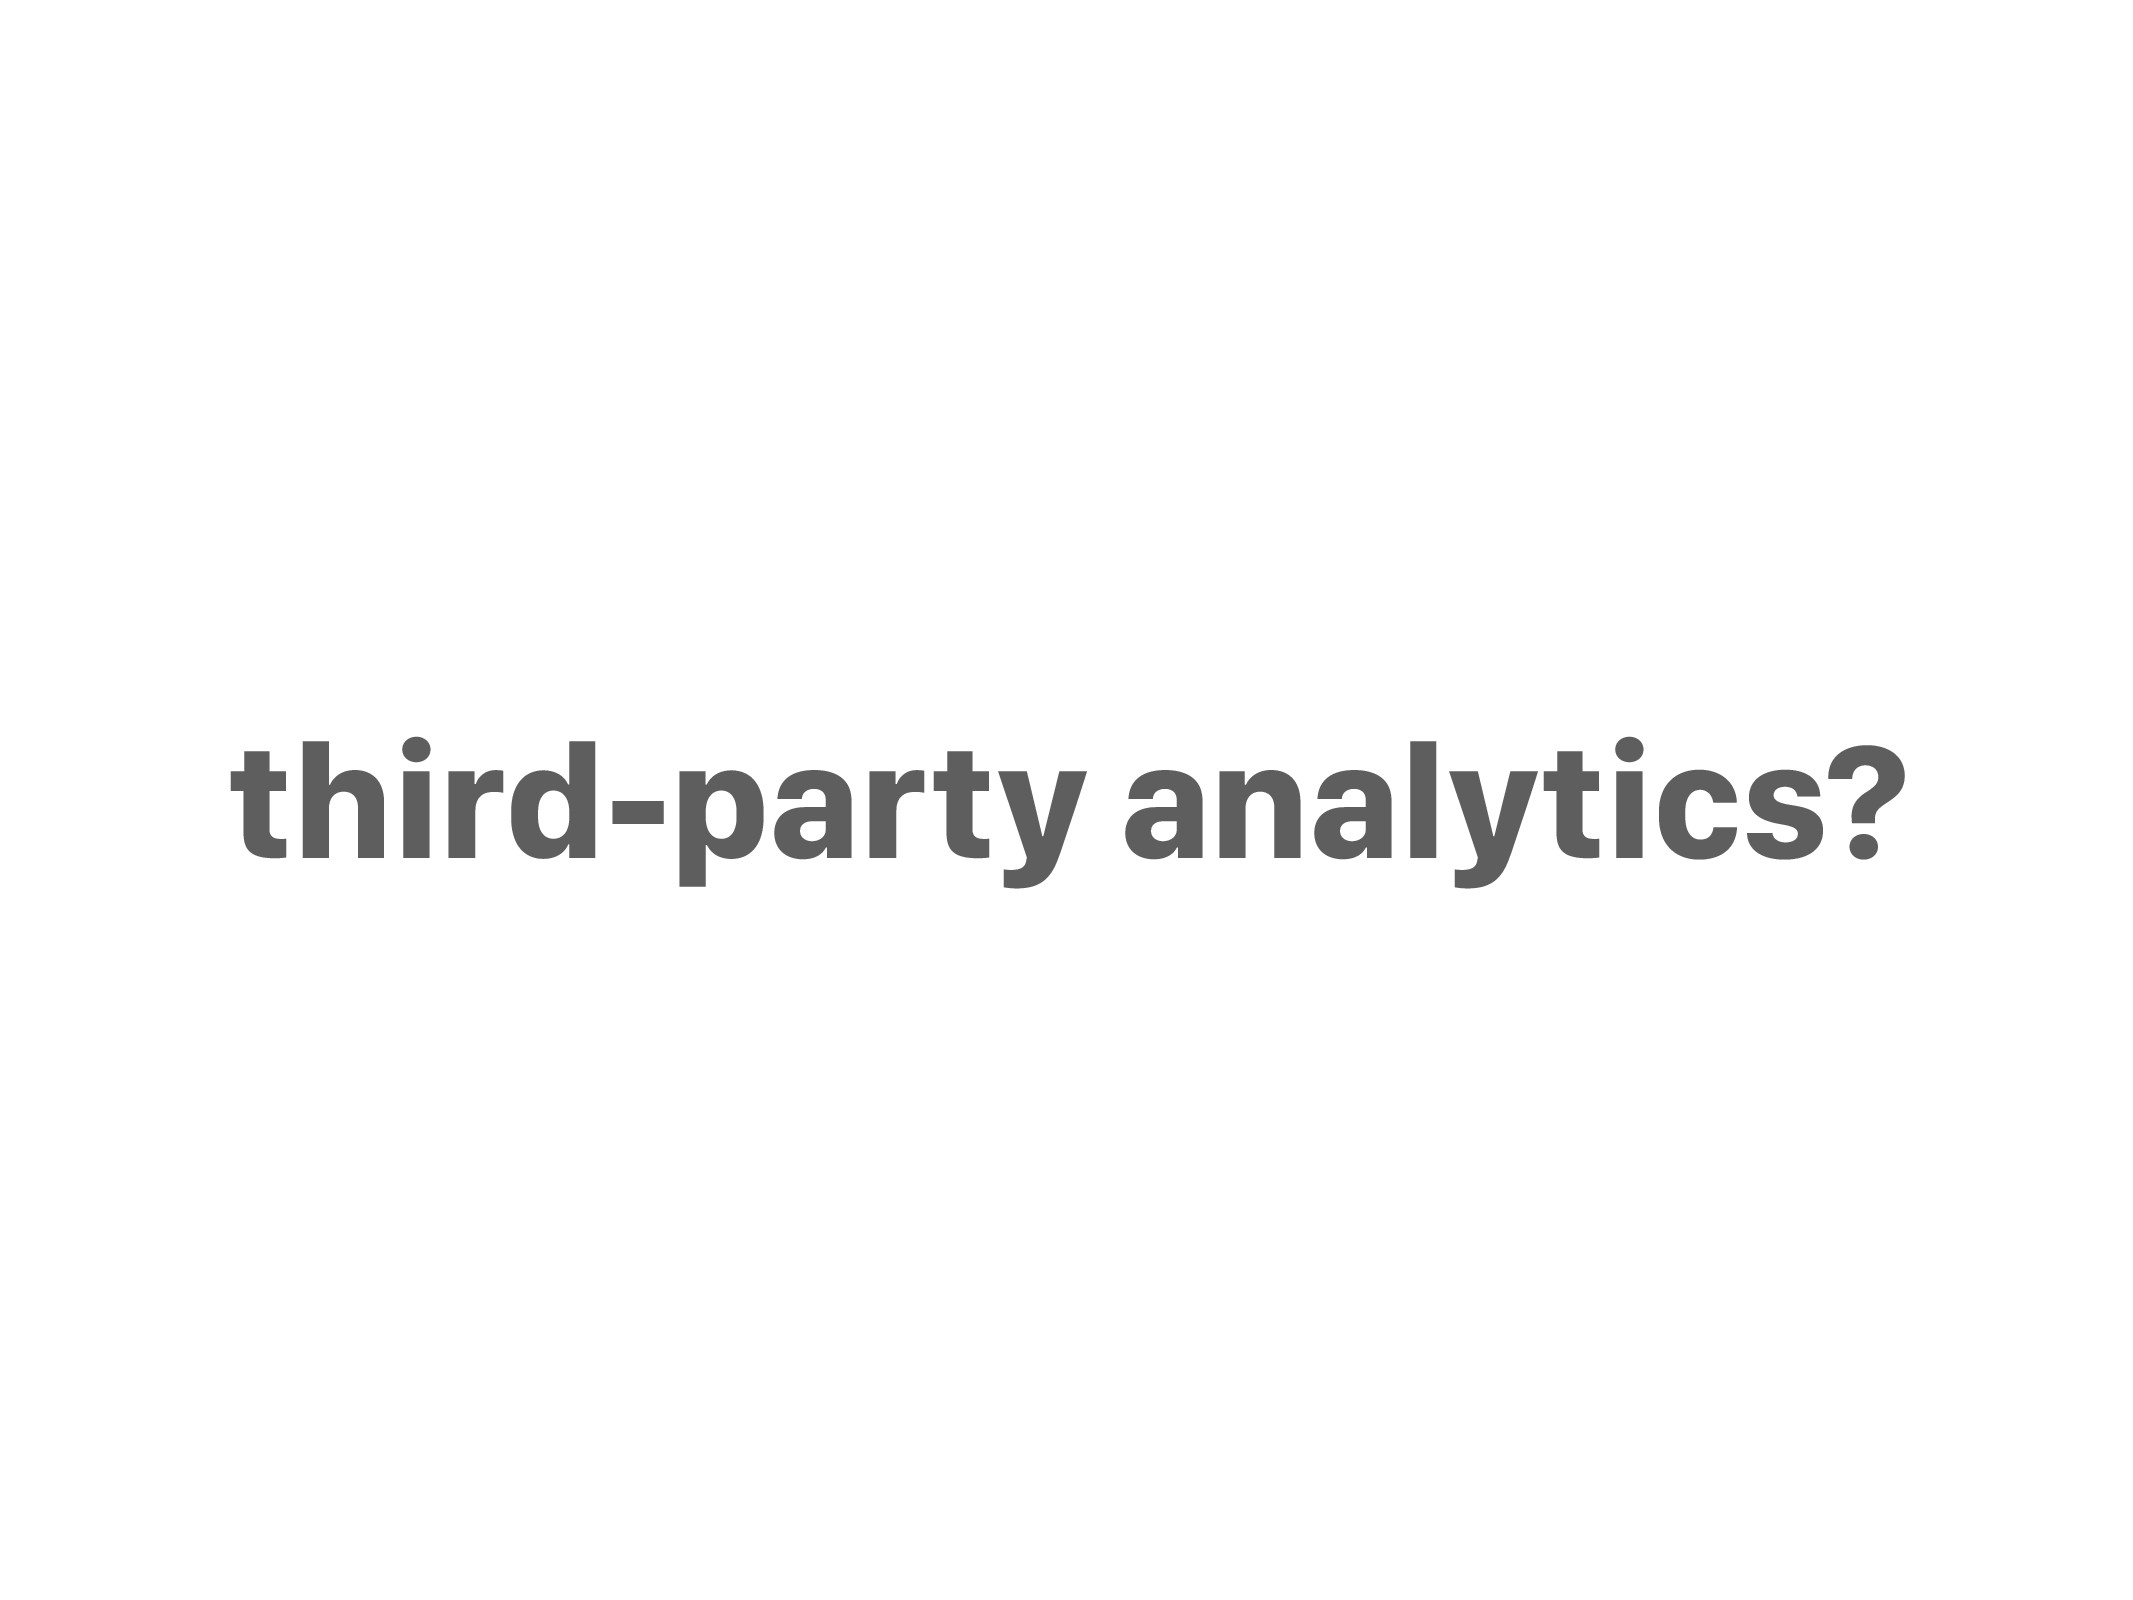 third-party analytics?